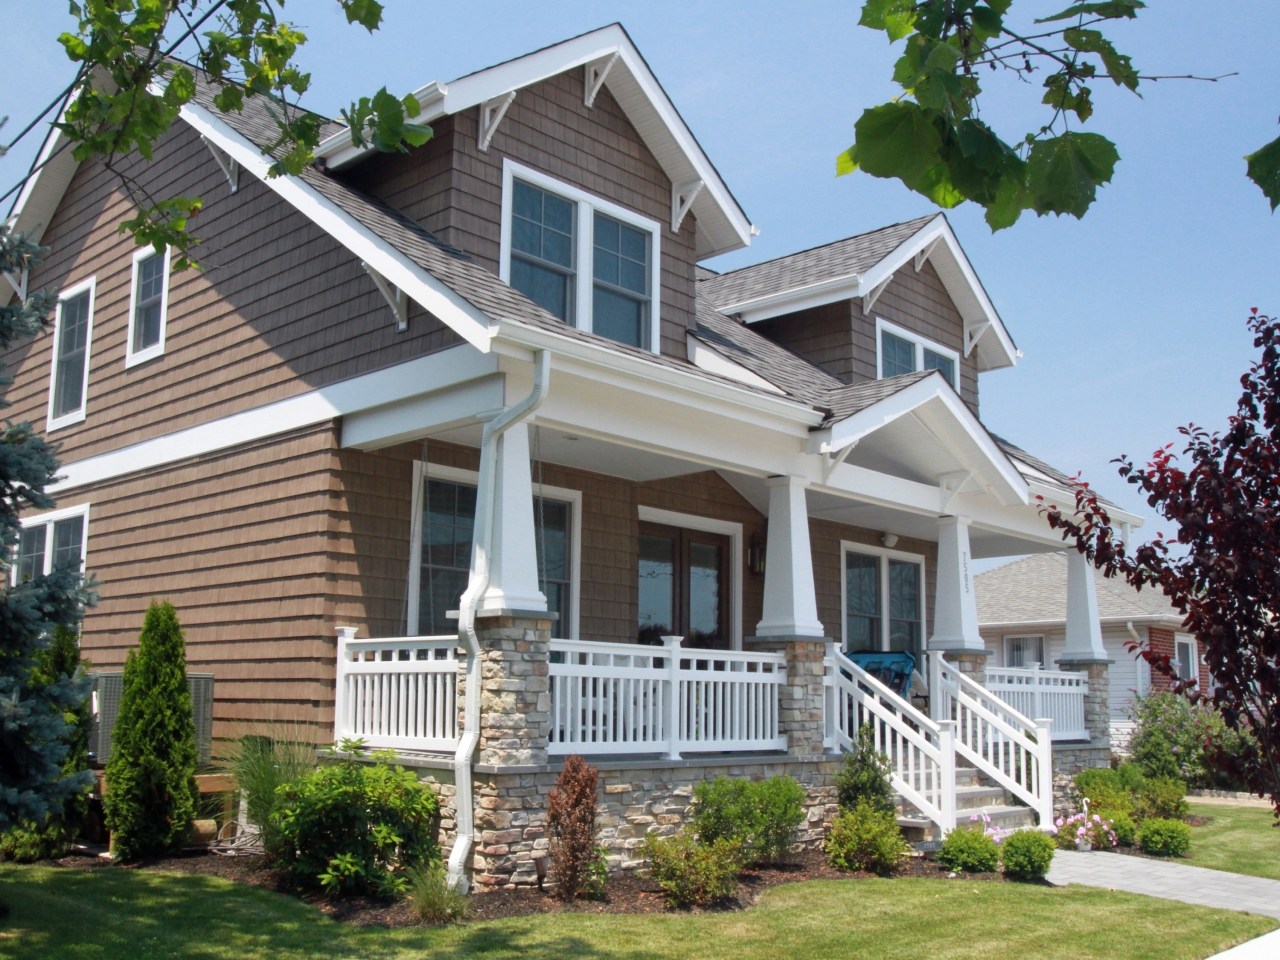 4 Bedroom House Plans With Front Porch 28 Images